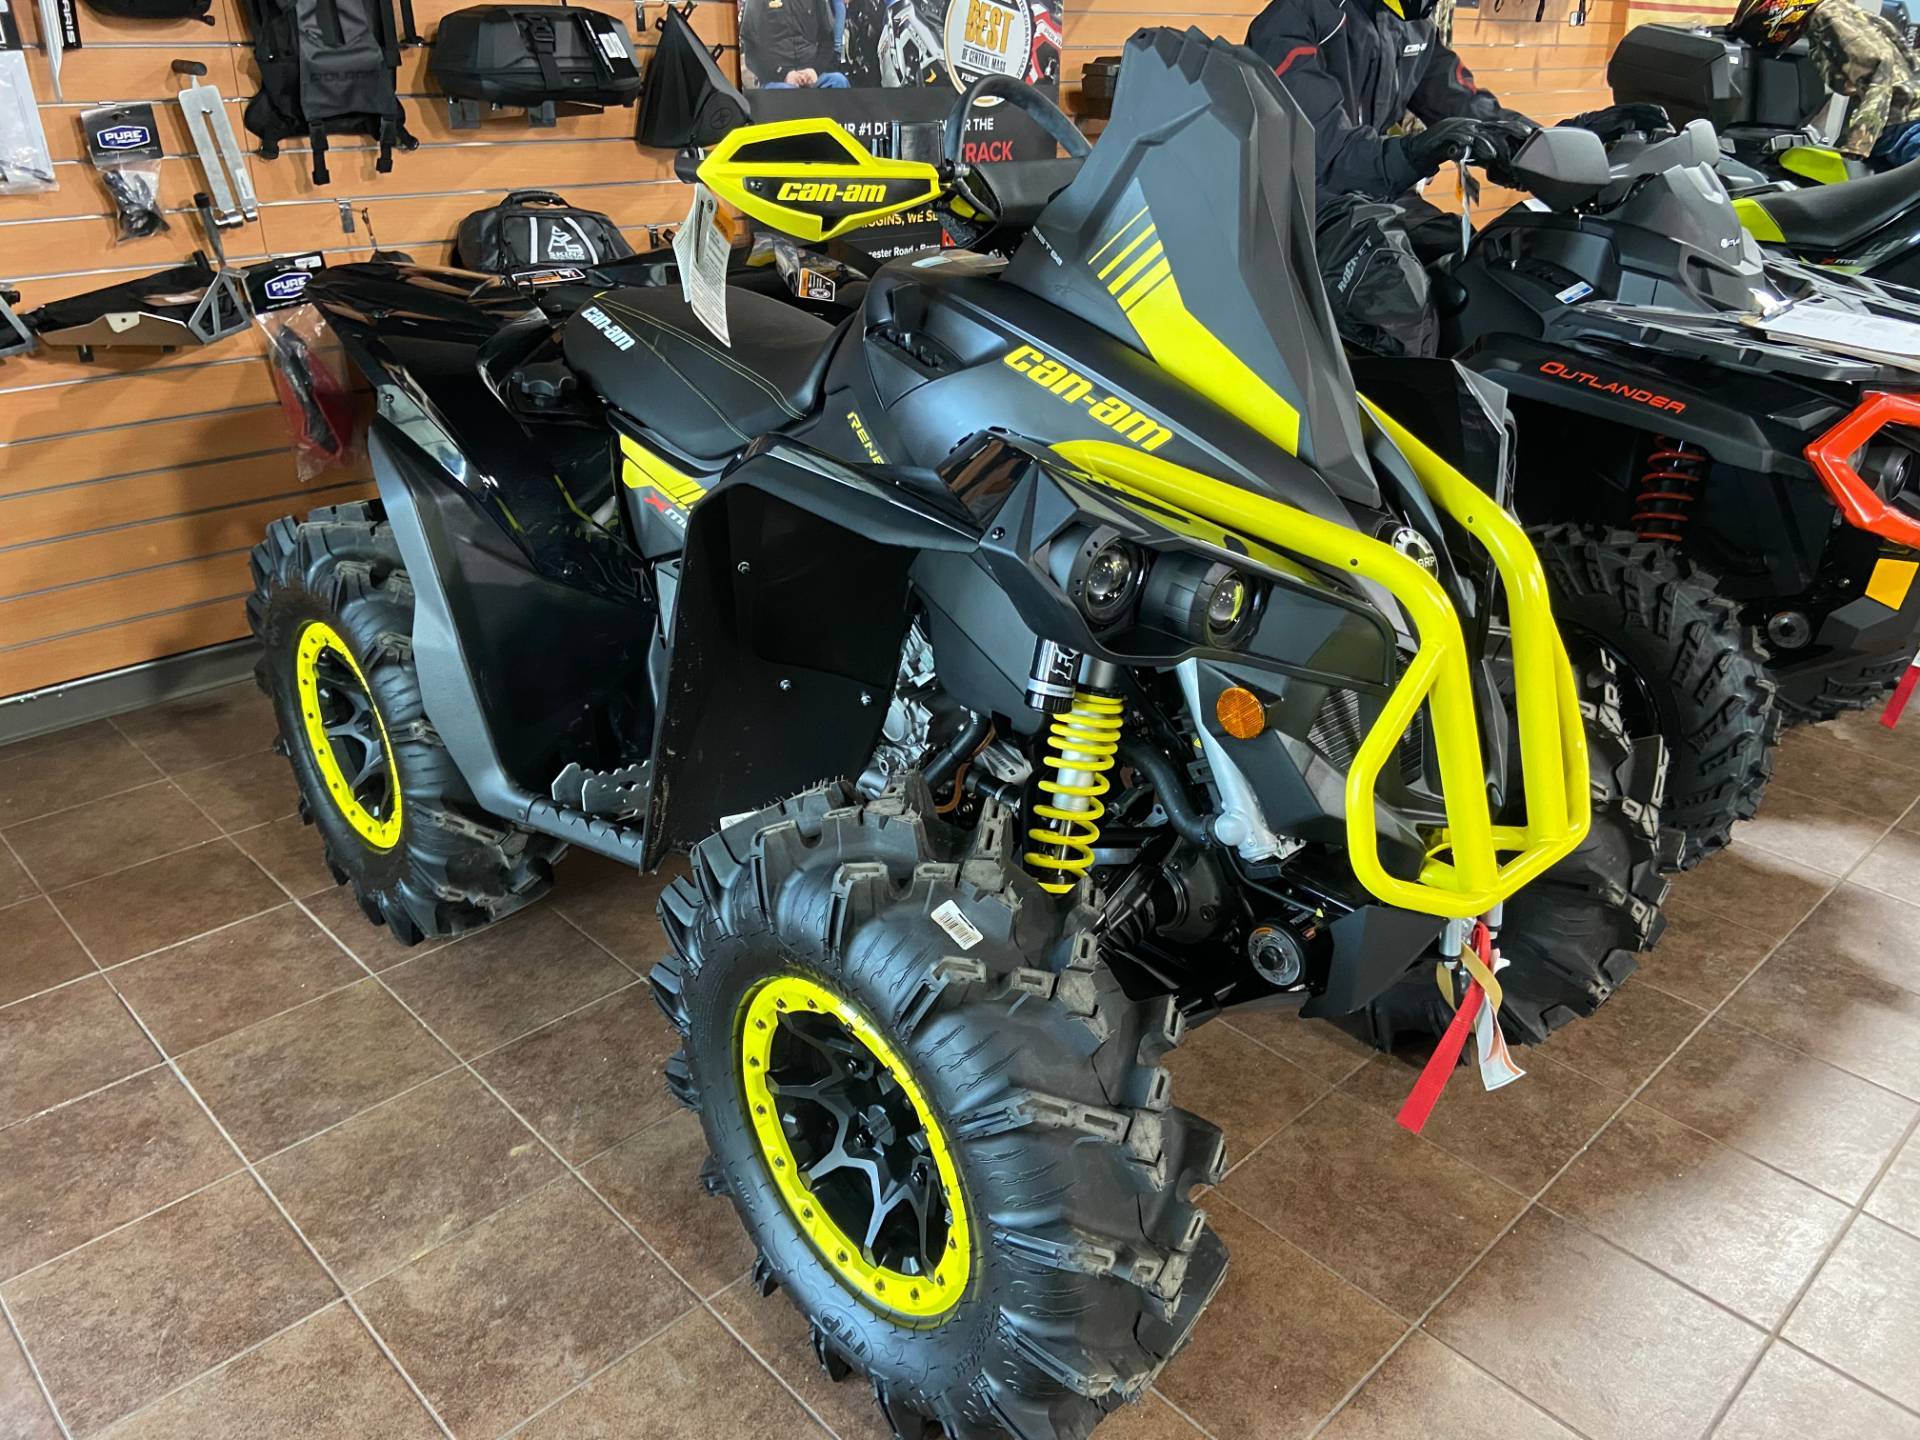 2018 Can-Am Renegade X MR 1000R in Barre, Massachusetts - Photo 5